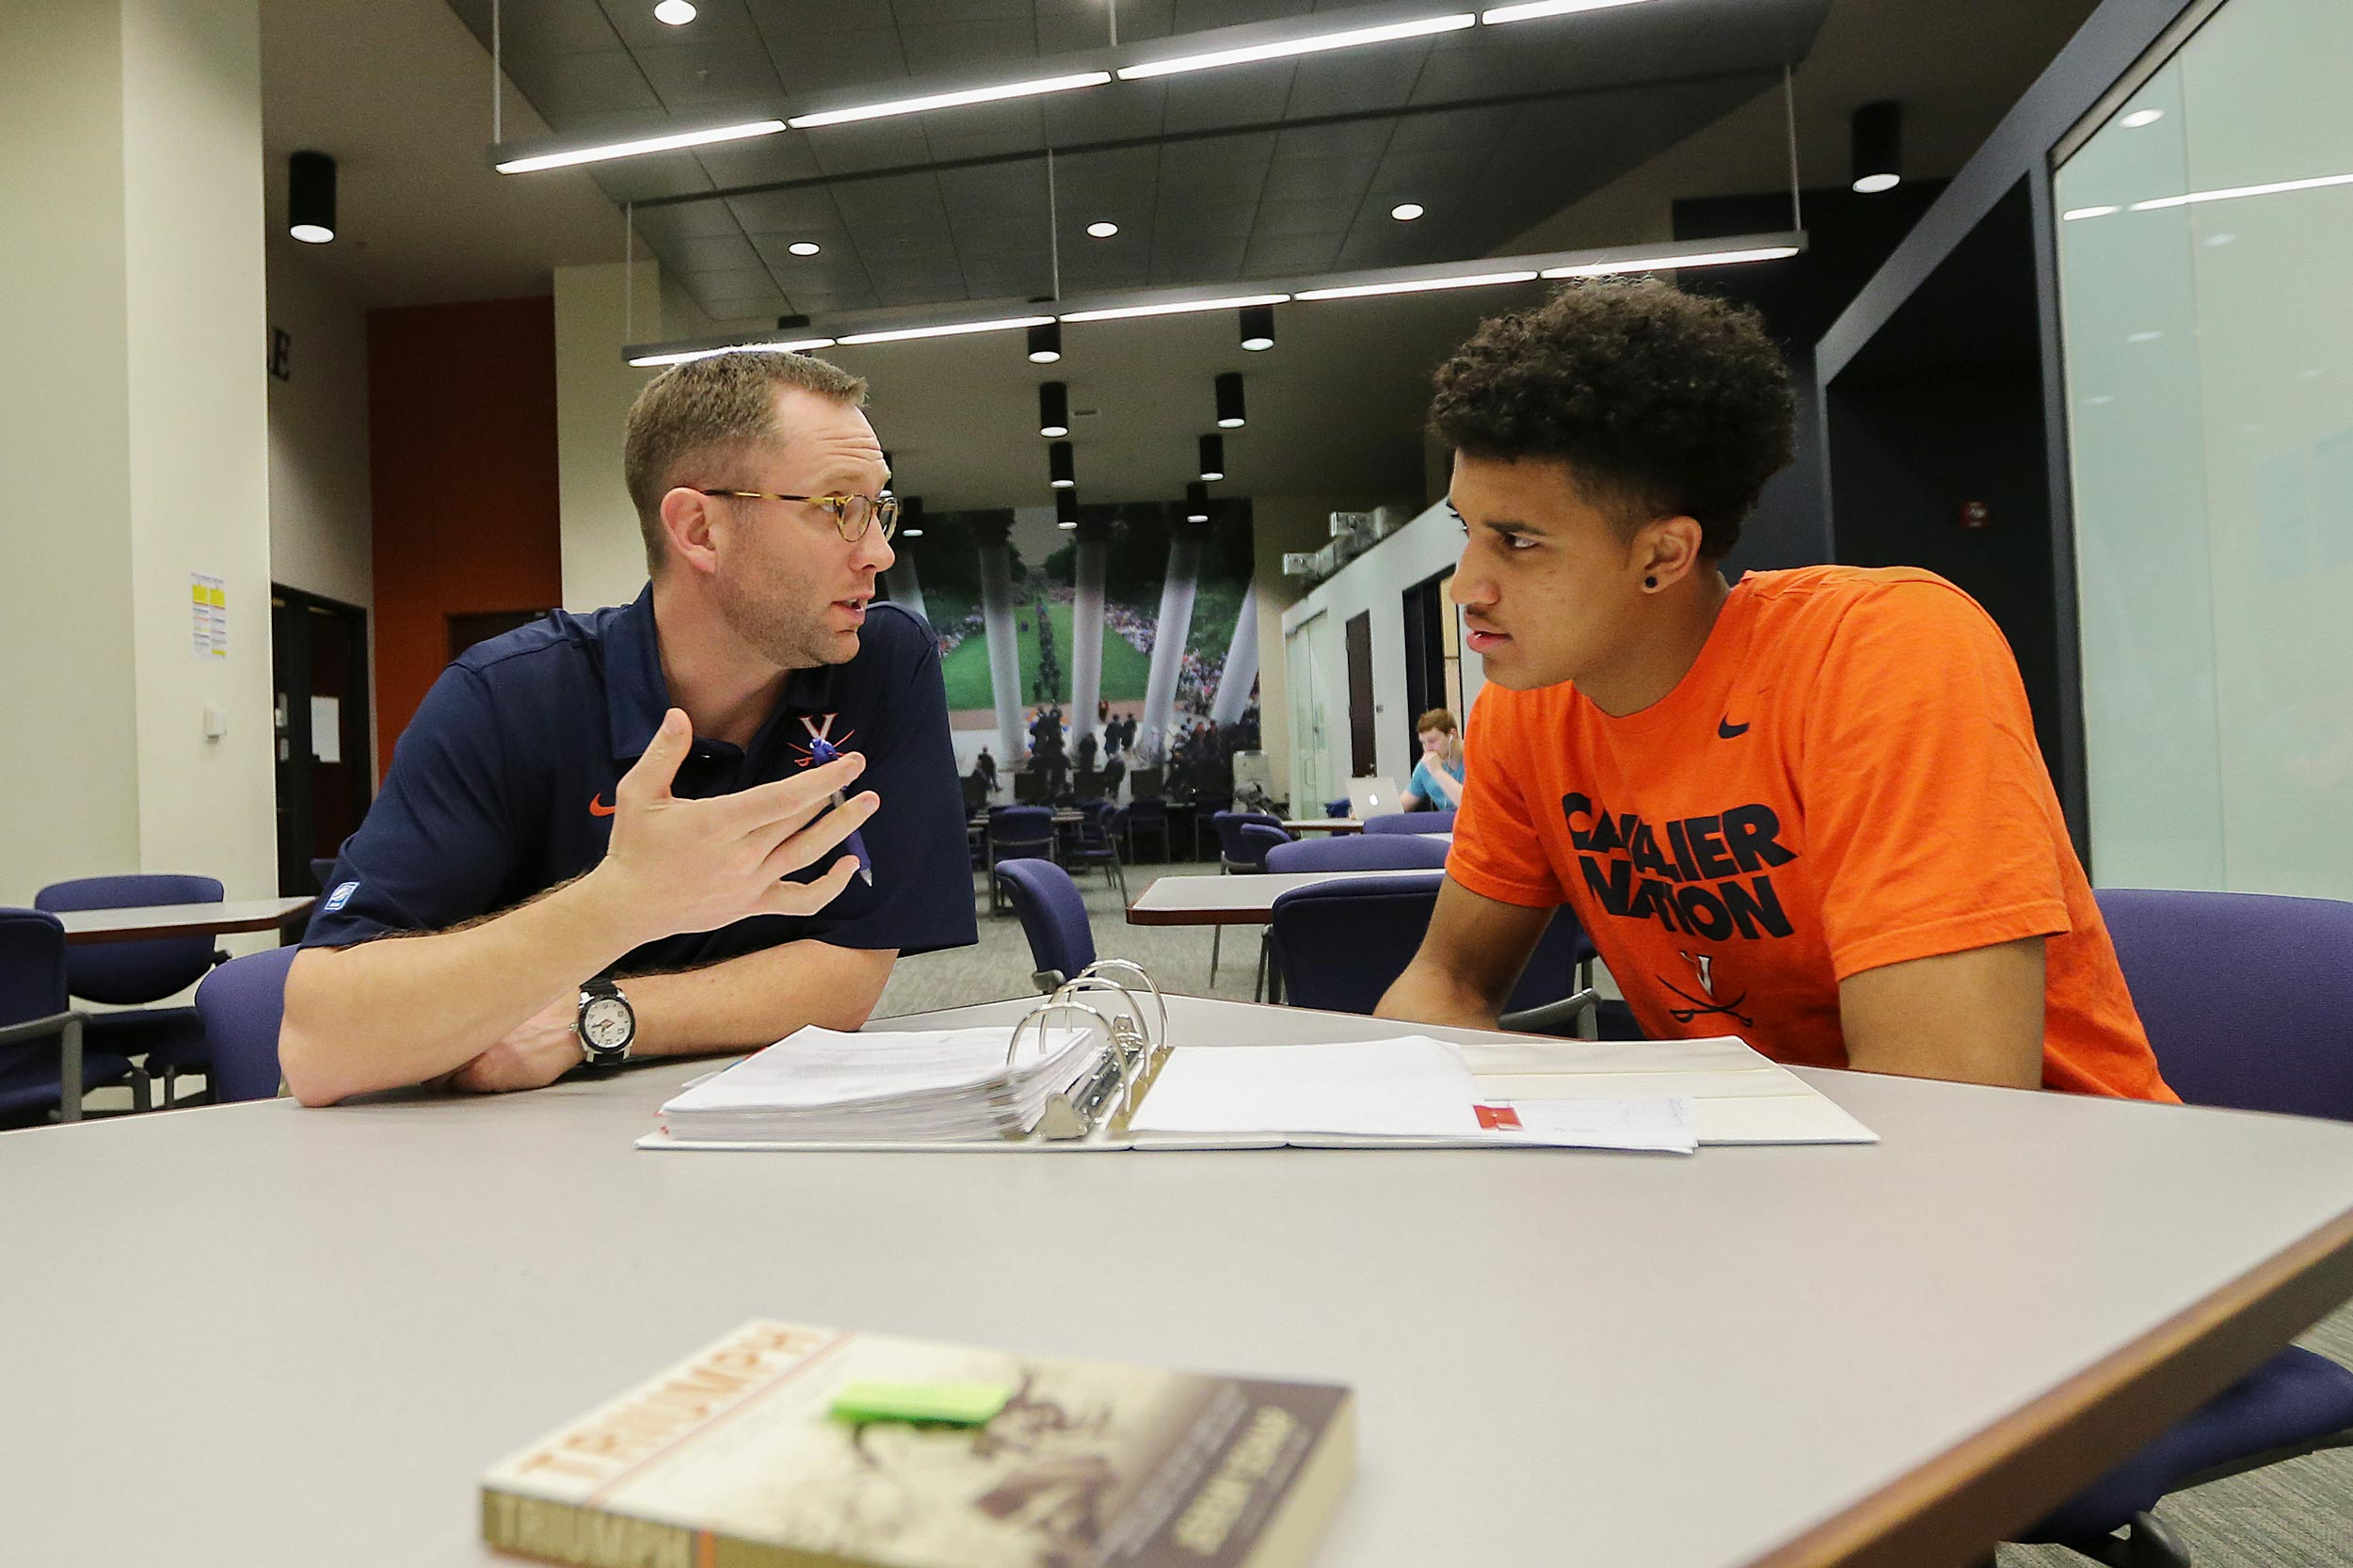 Grams talks with former player Isaiah Wilkins. Grams said Wilkins helped set the standard off the court that the current team follows.